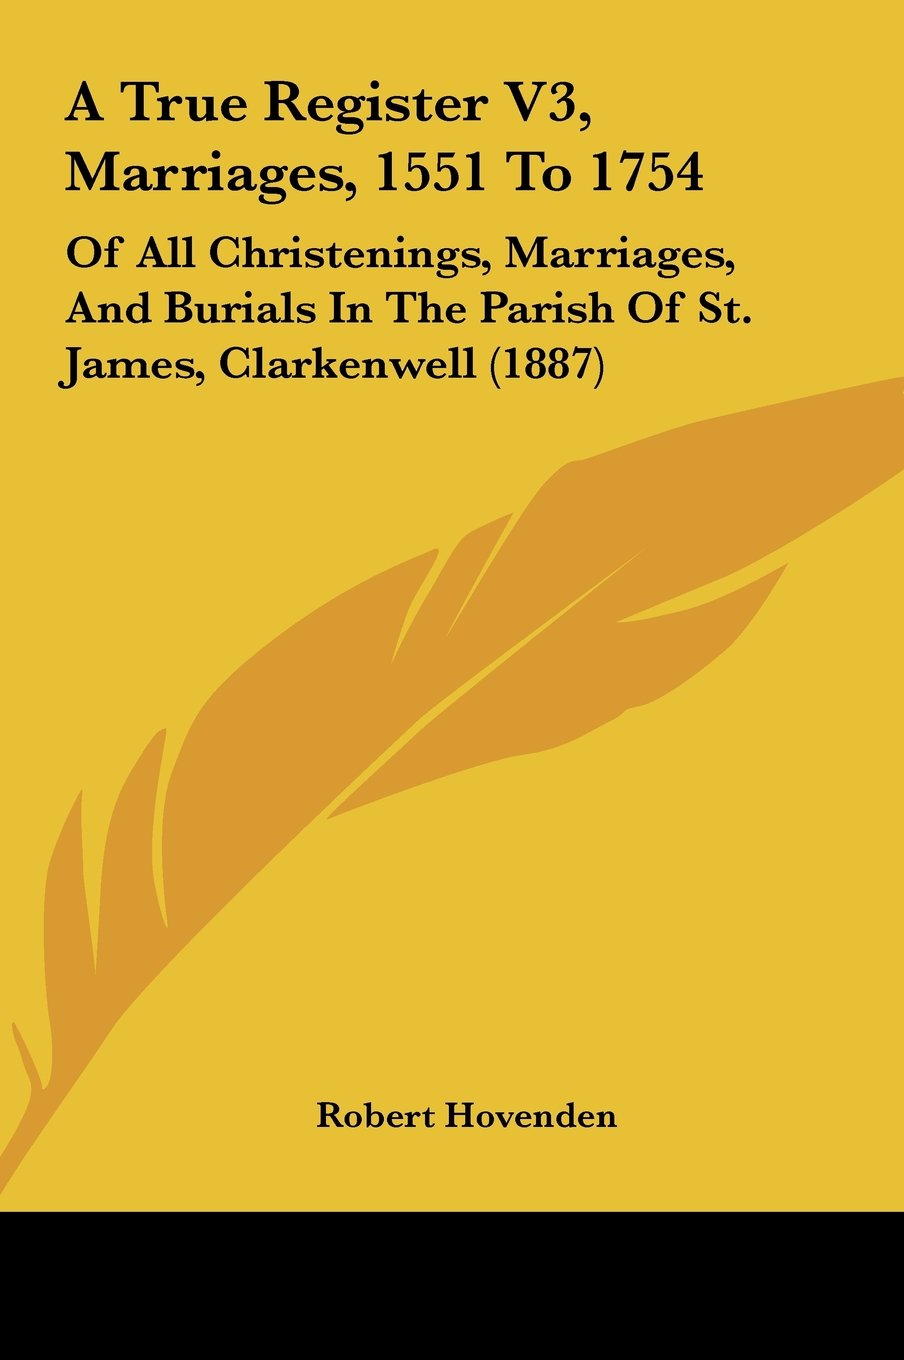 A True Register V3, Marriages, 1551 To 1754: Of All Christenings, Marriages, And Burials In The Parish Of St. James, Clarkenwell (1887) pdf